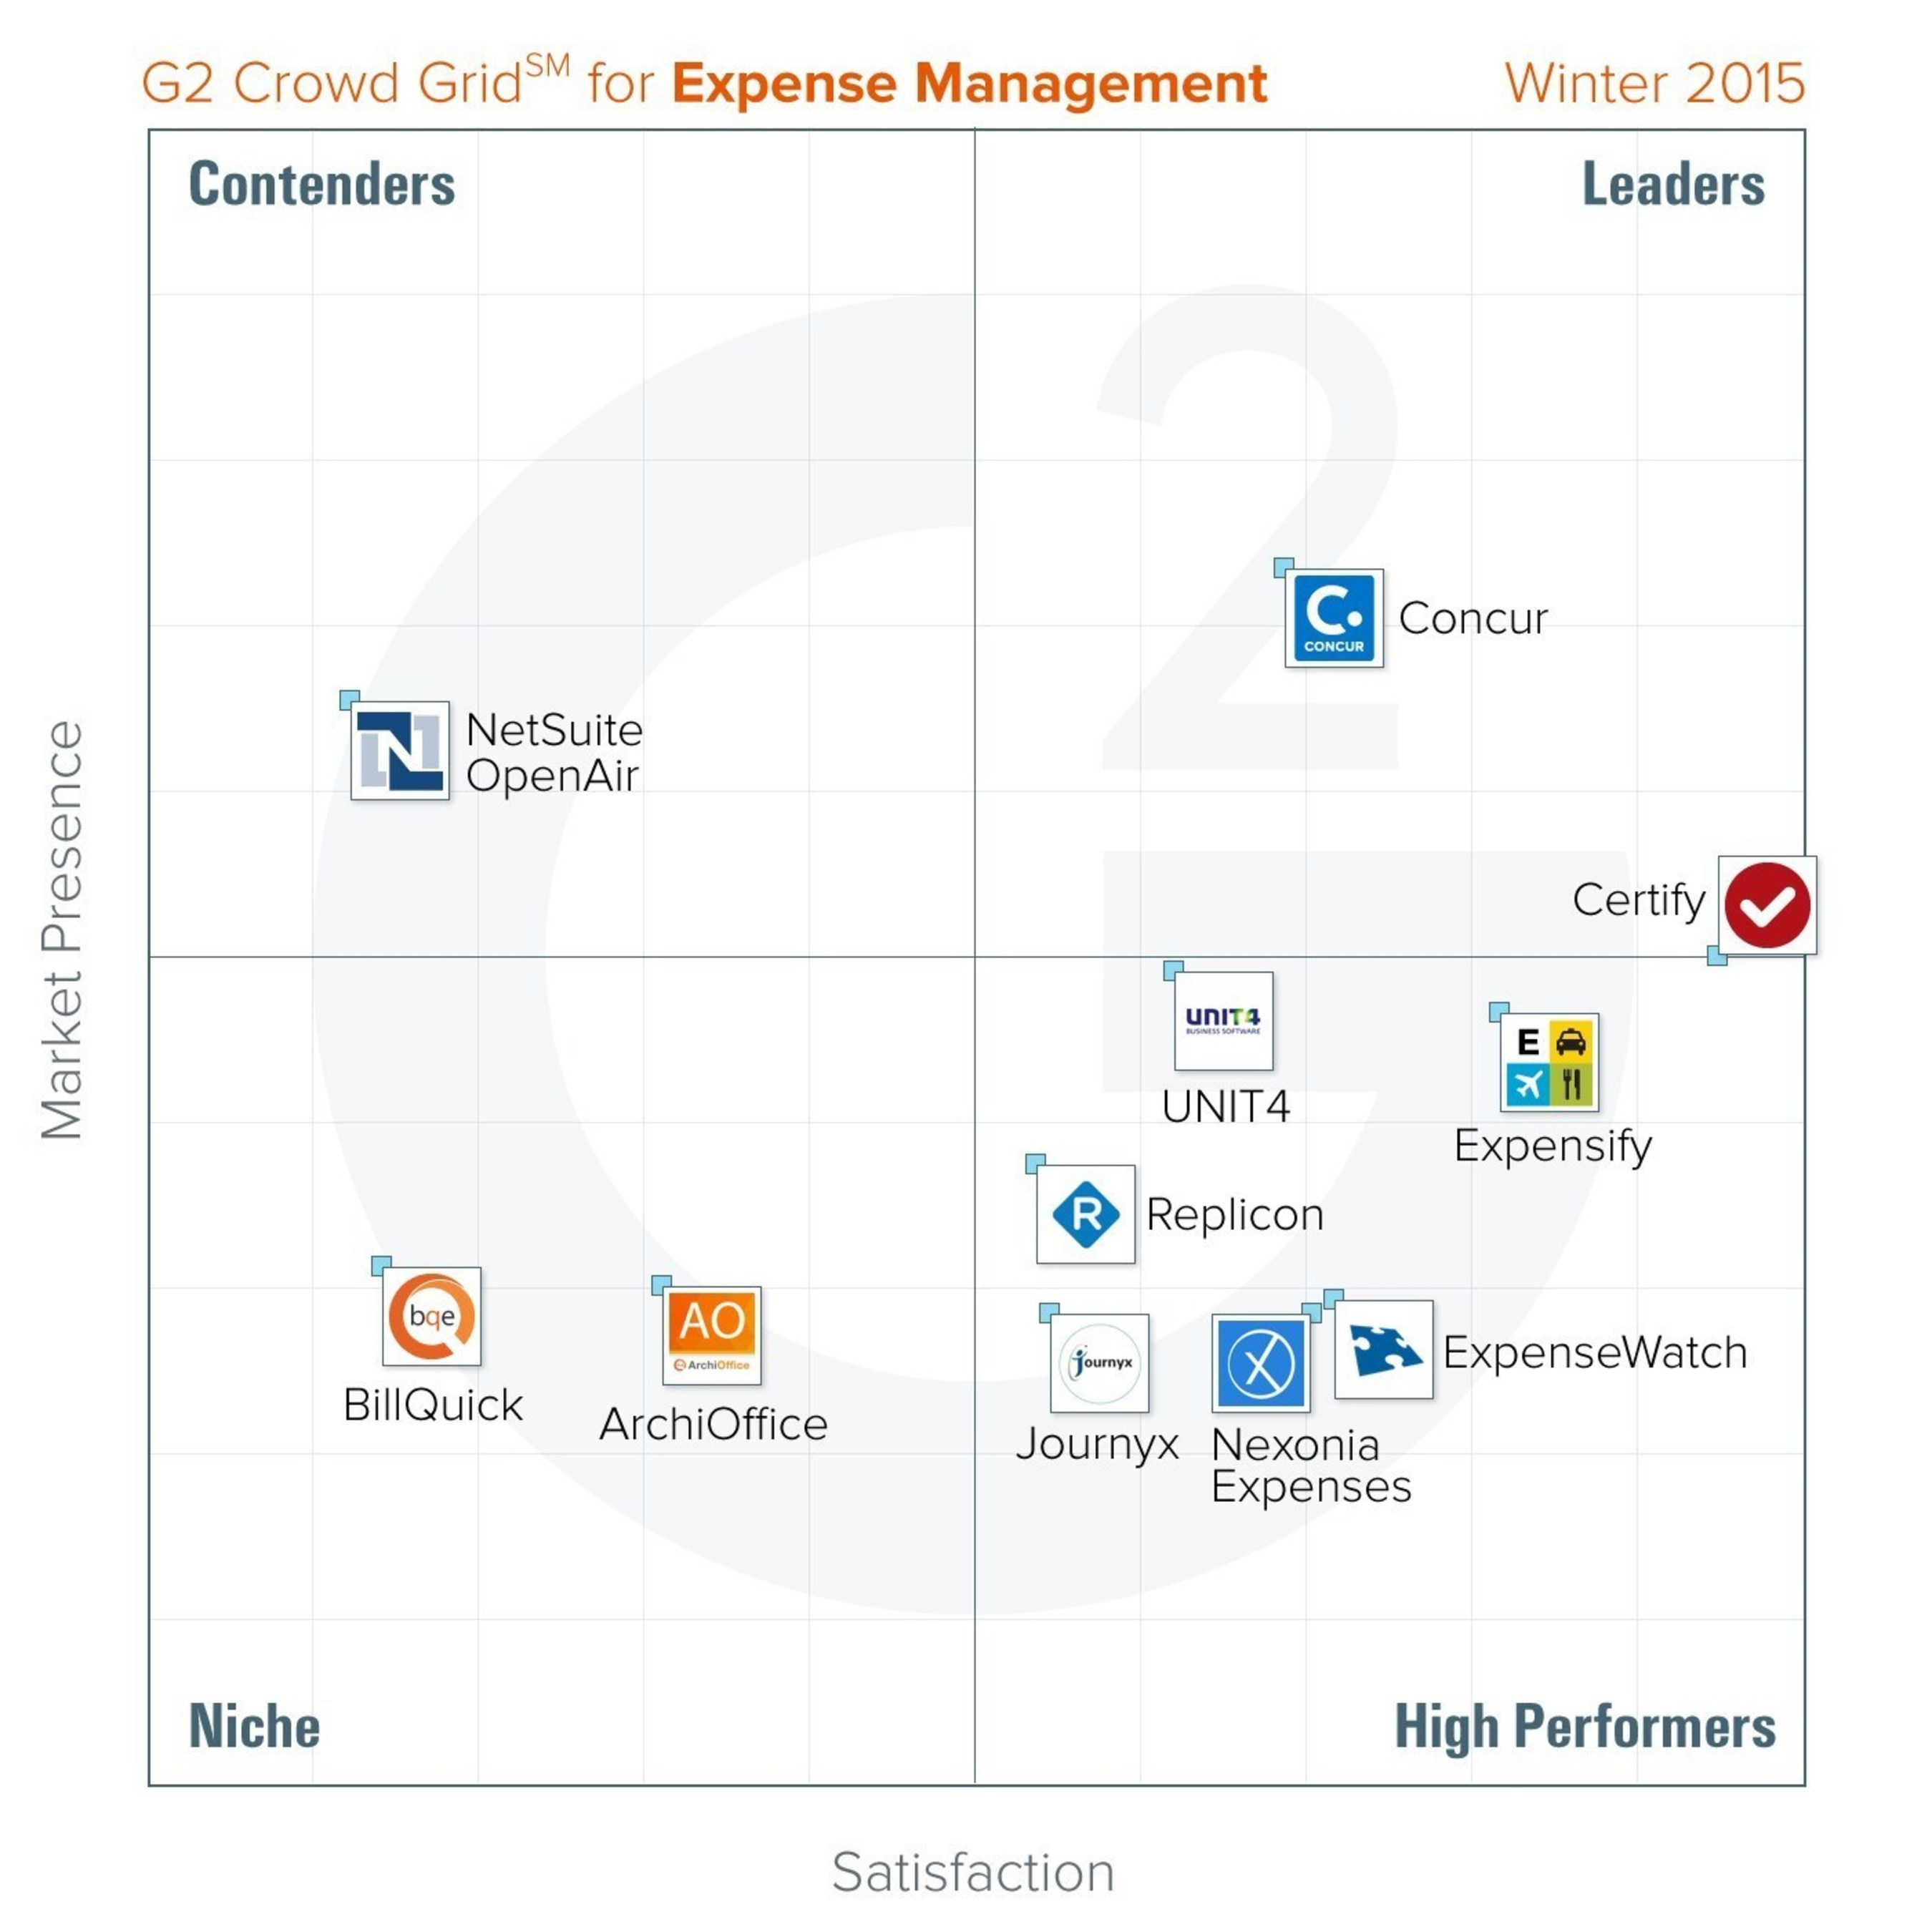 G2 Crowd publishes Winter 2015 rankings of the best expense